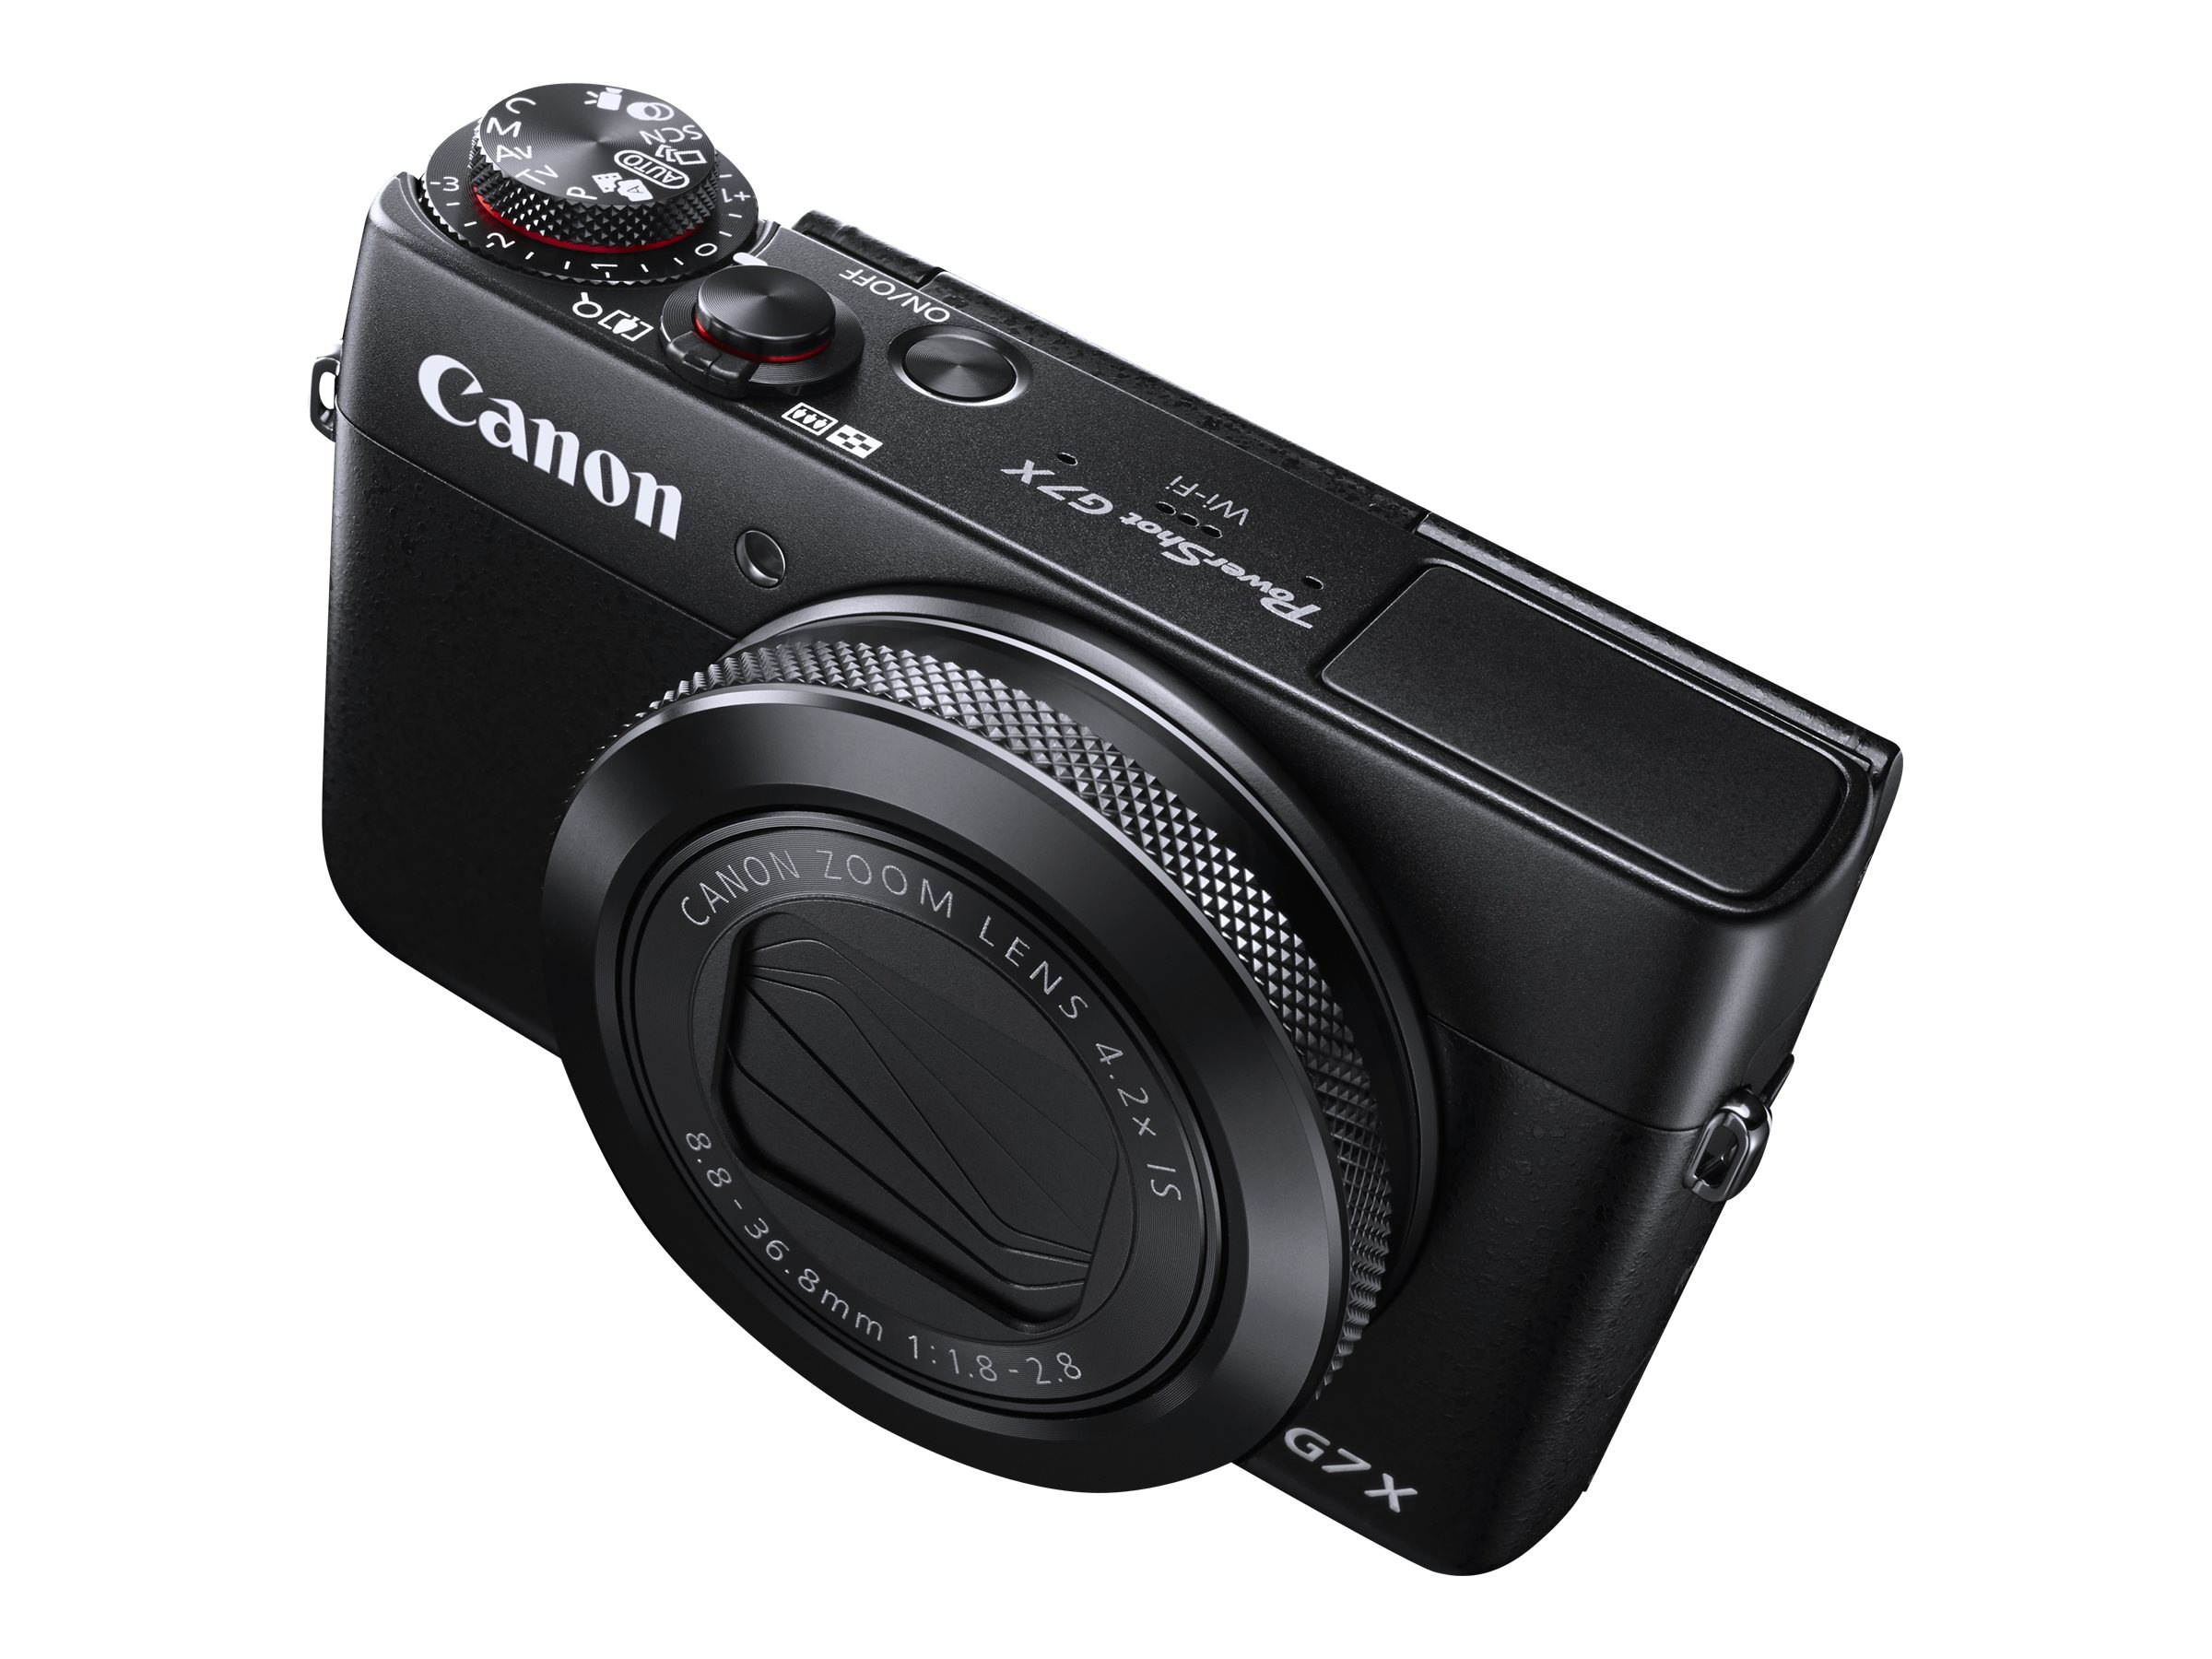 Canon PowerShot G7 X Digital Camera, 20.2MP, Black